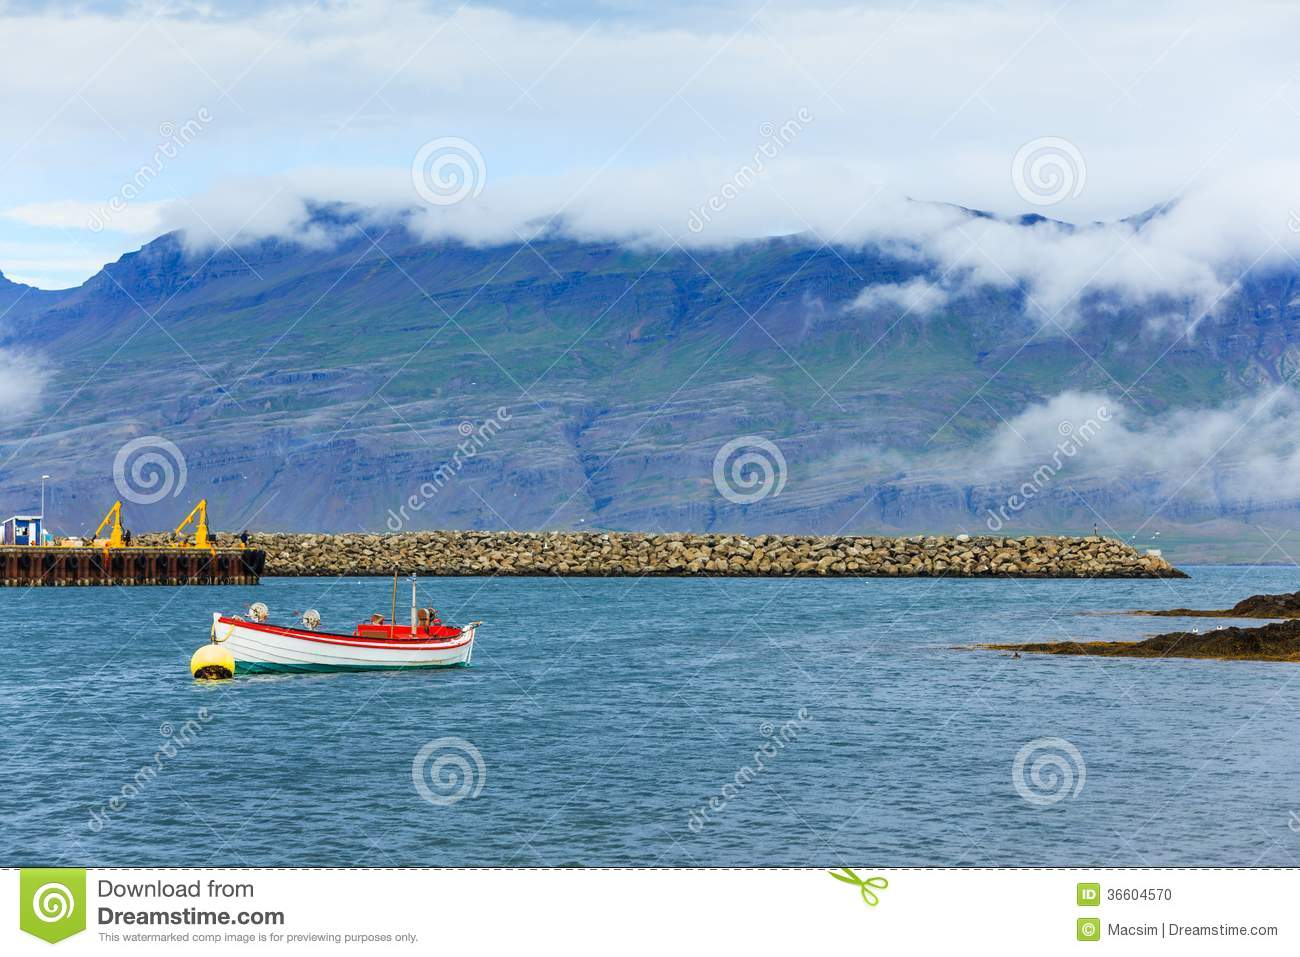 Fishing Boats Stock Photo - Image: 36604570